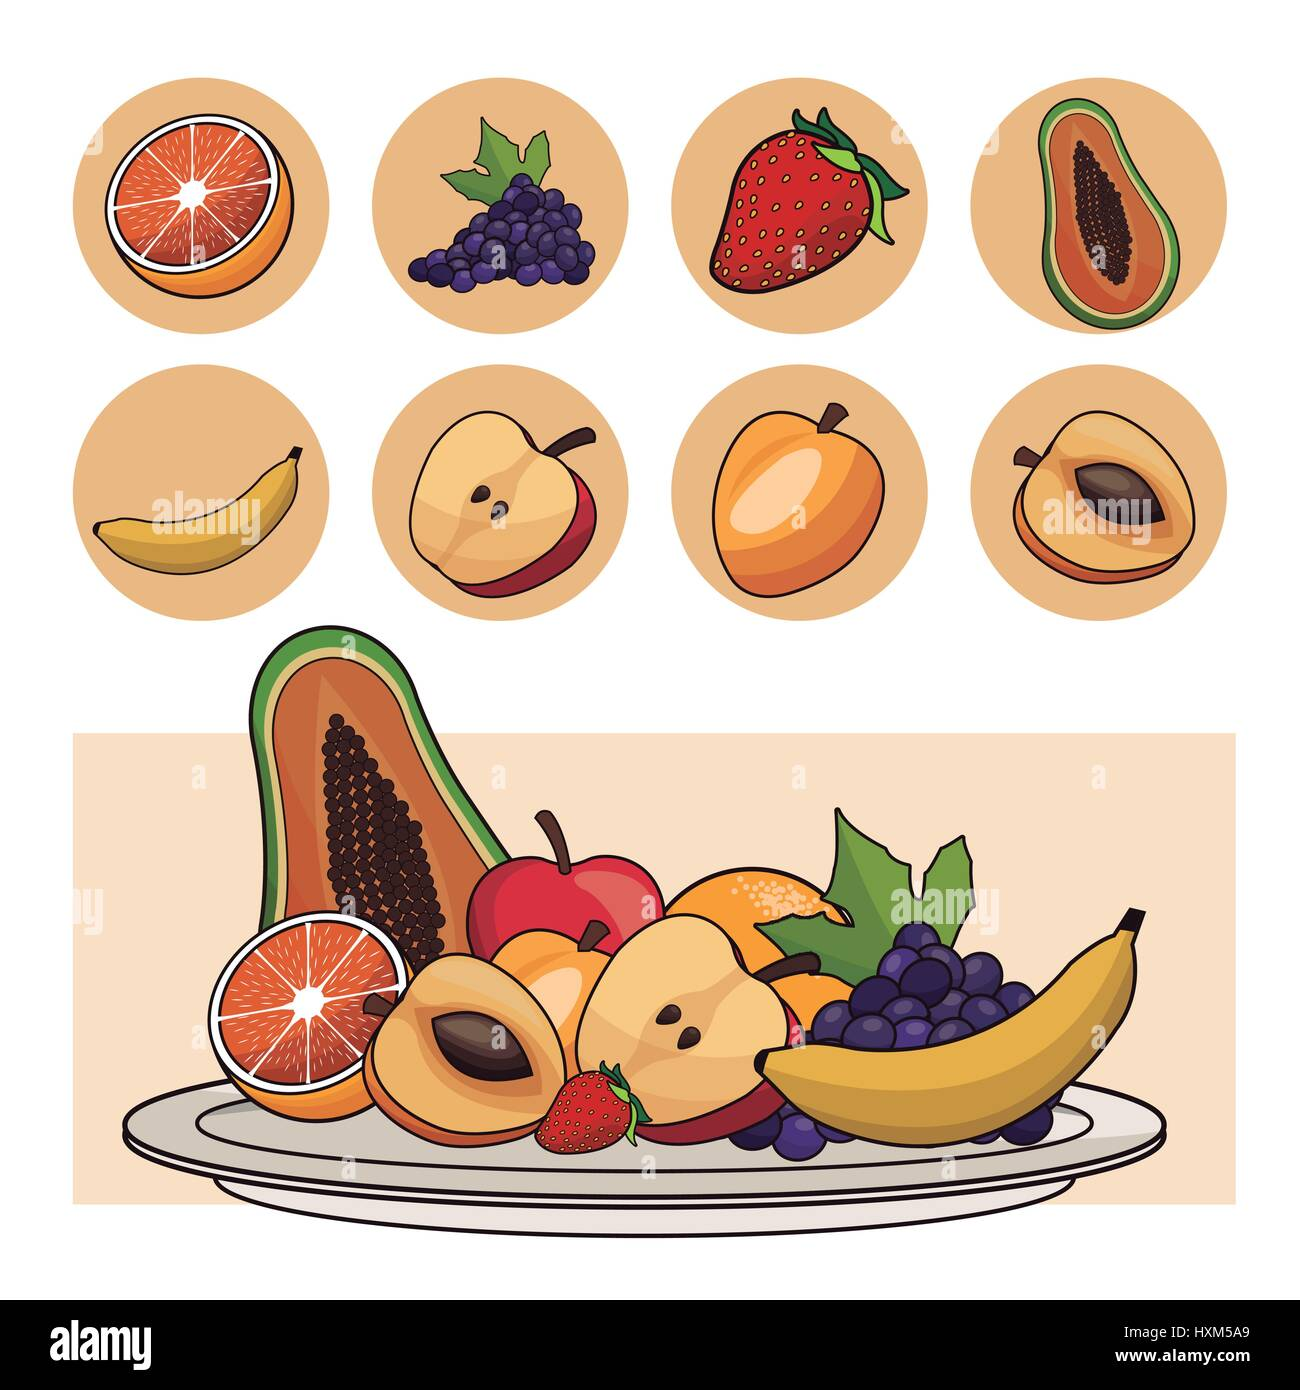 fruits nutrition salad plate icons - Stock Vector